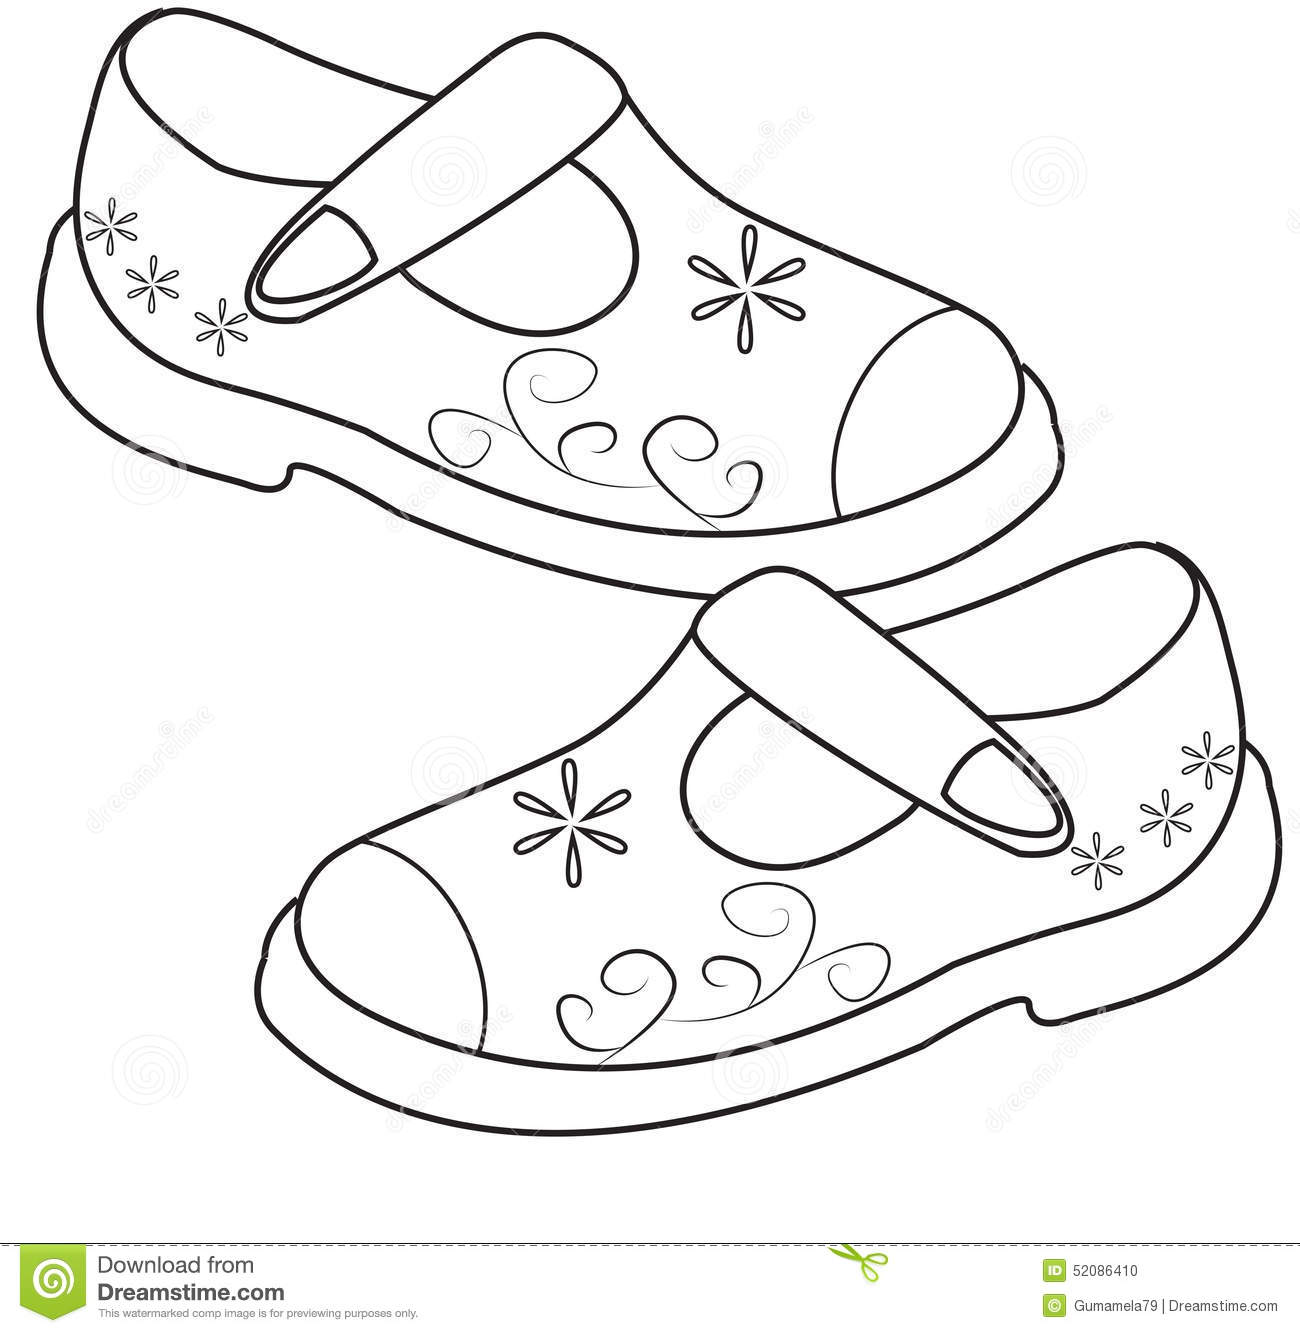 childrens coloring pages shoes - photo#18